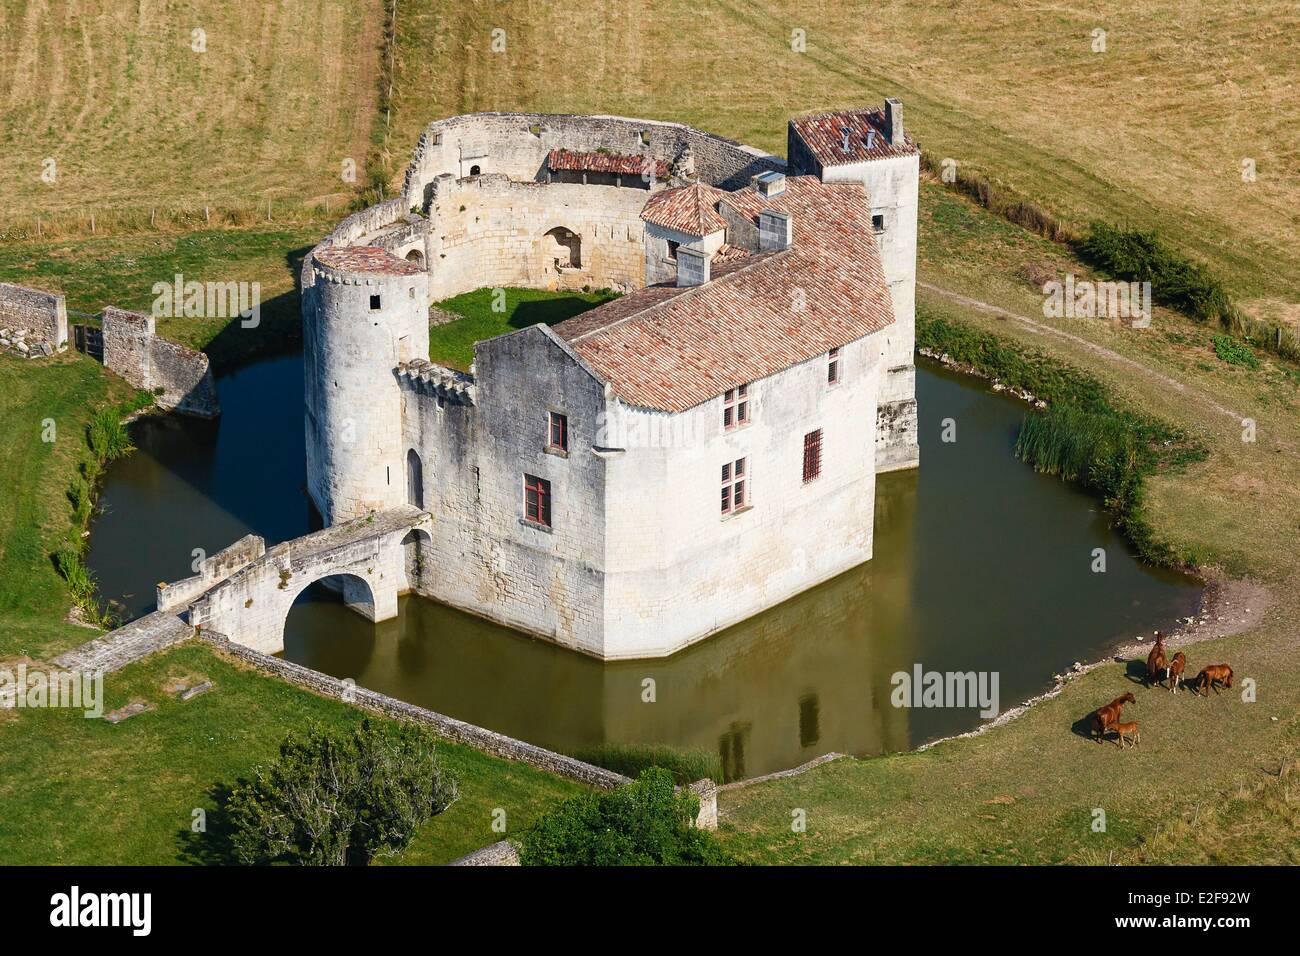 France, Charente Maritime, Saint Jean d'Angle, castle of the 12th century (aerial view) - Stock Image